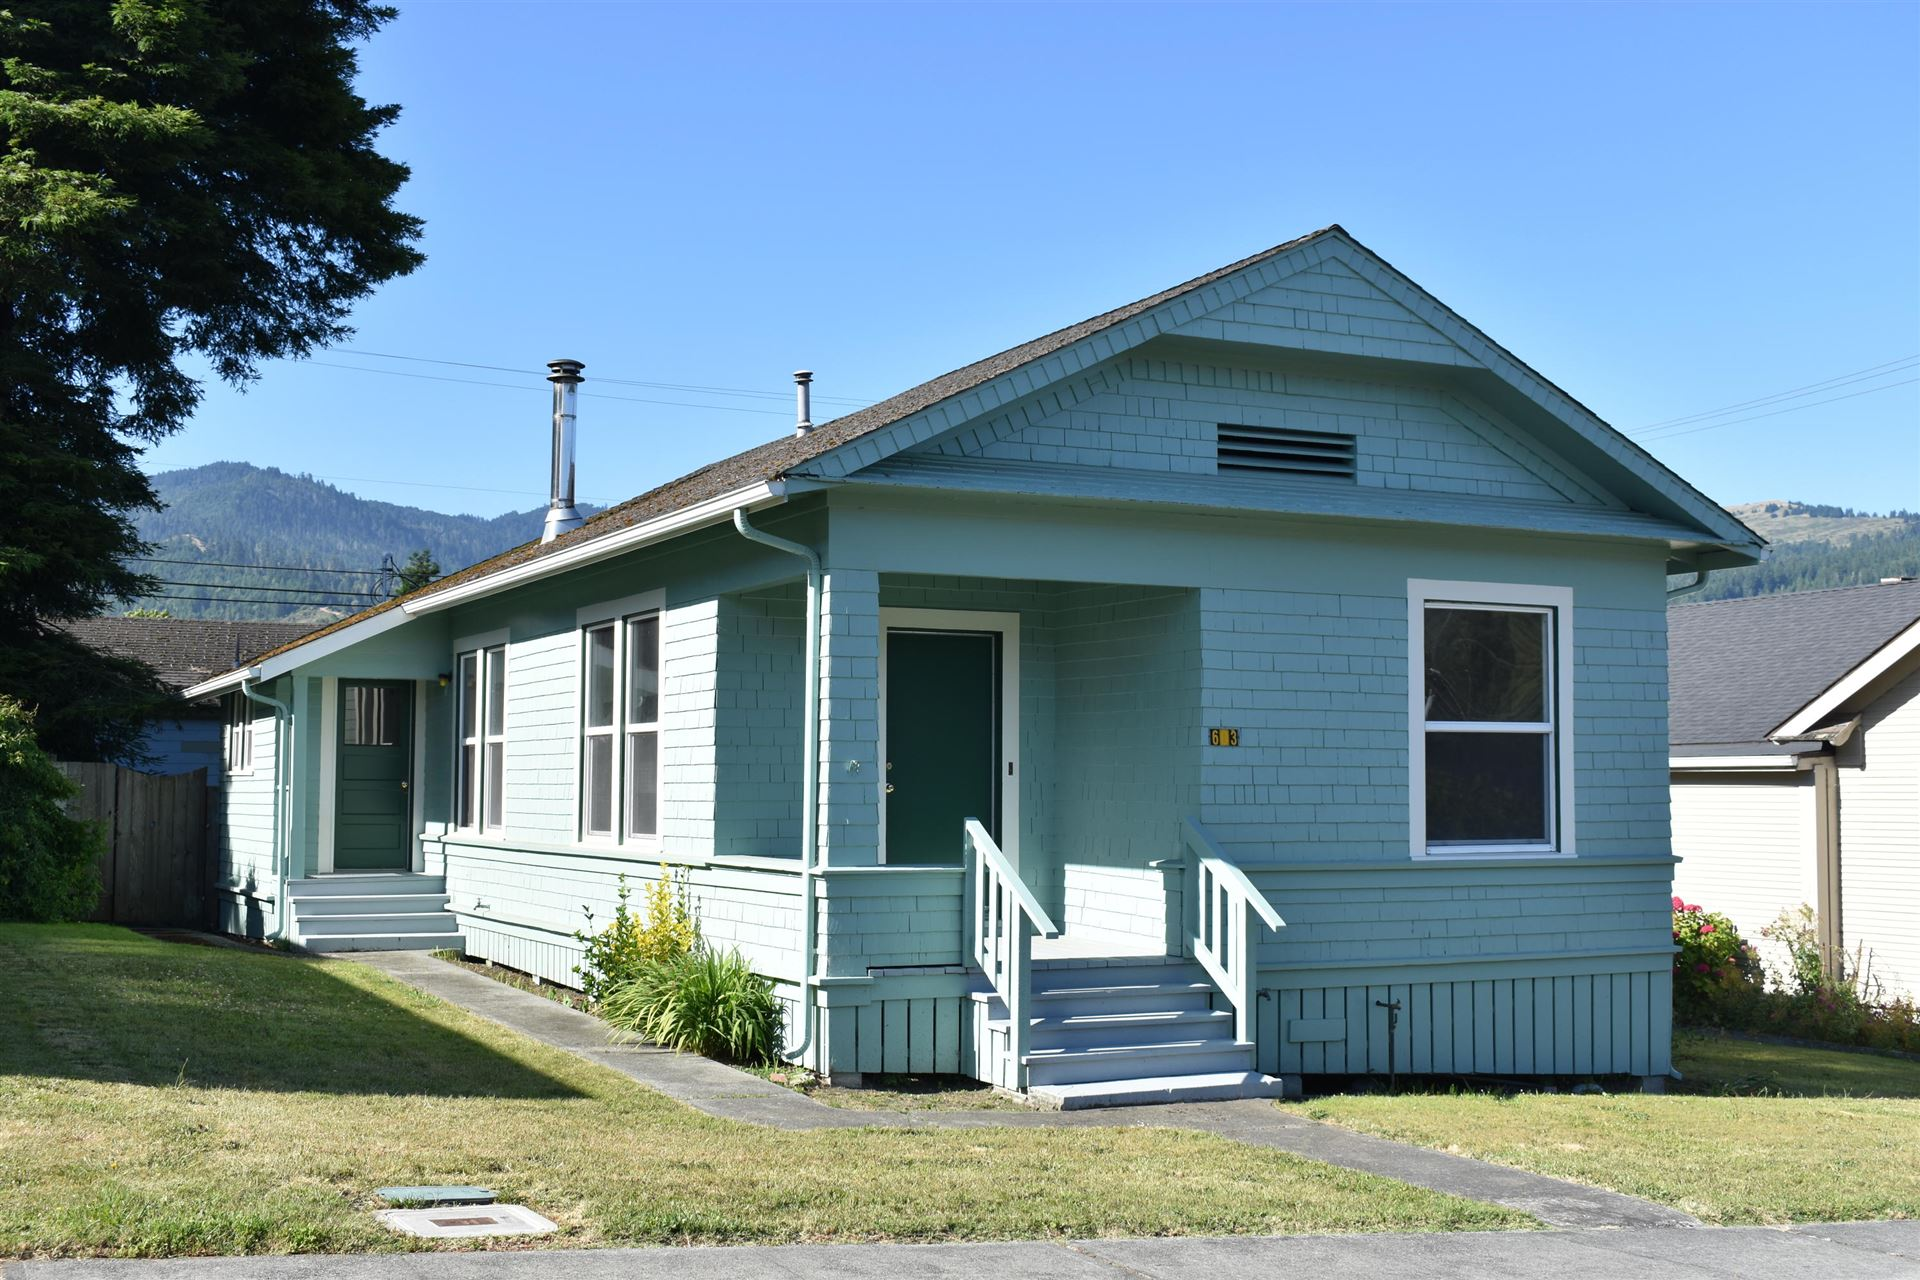 603 First Street, Scotia, CA 95565 - MLS#: 256873